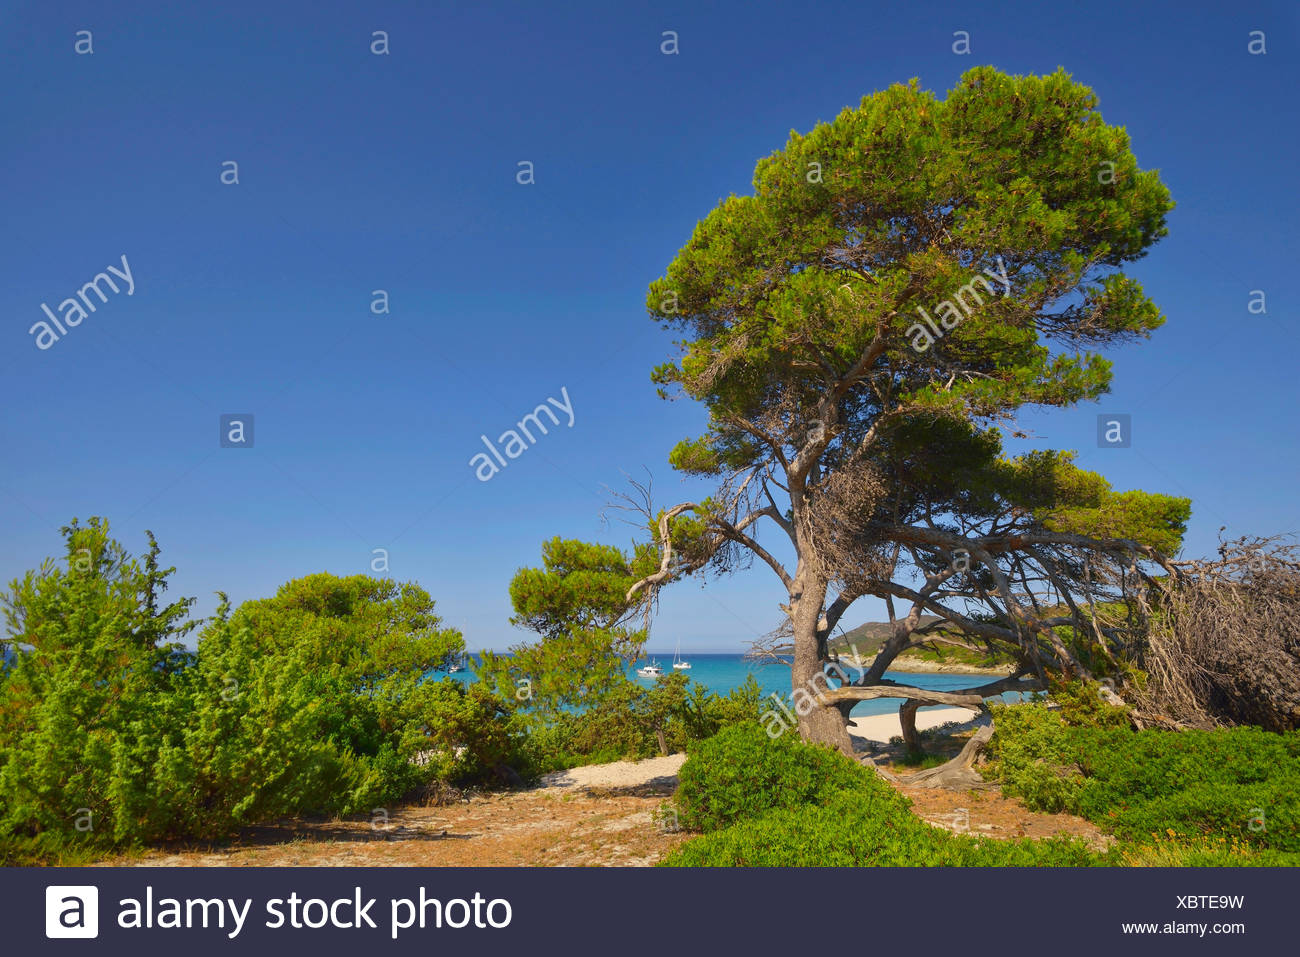 aleppo pine (Pinus halepensis), tree in Saleccia area in desert de Agriates, France, Corsica, Les Agriates, Saint Florent - Stock Image